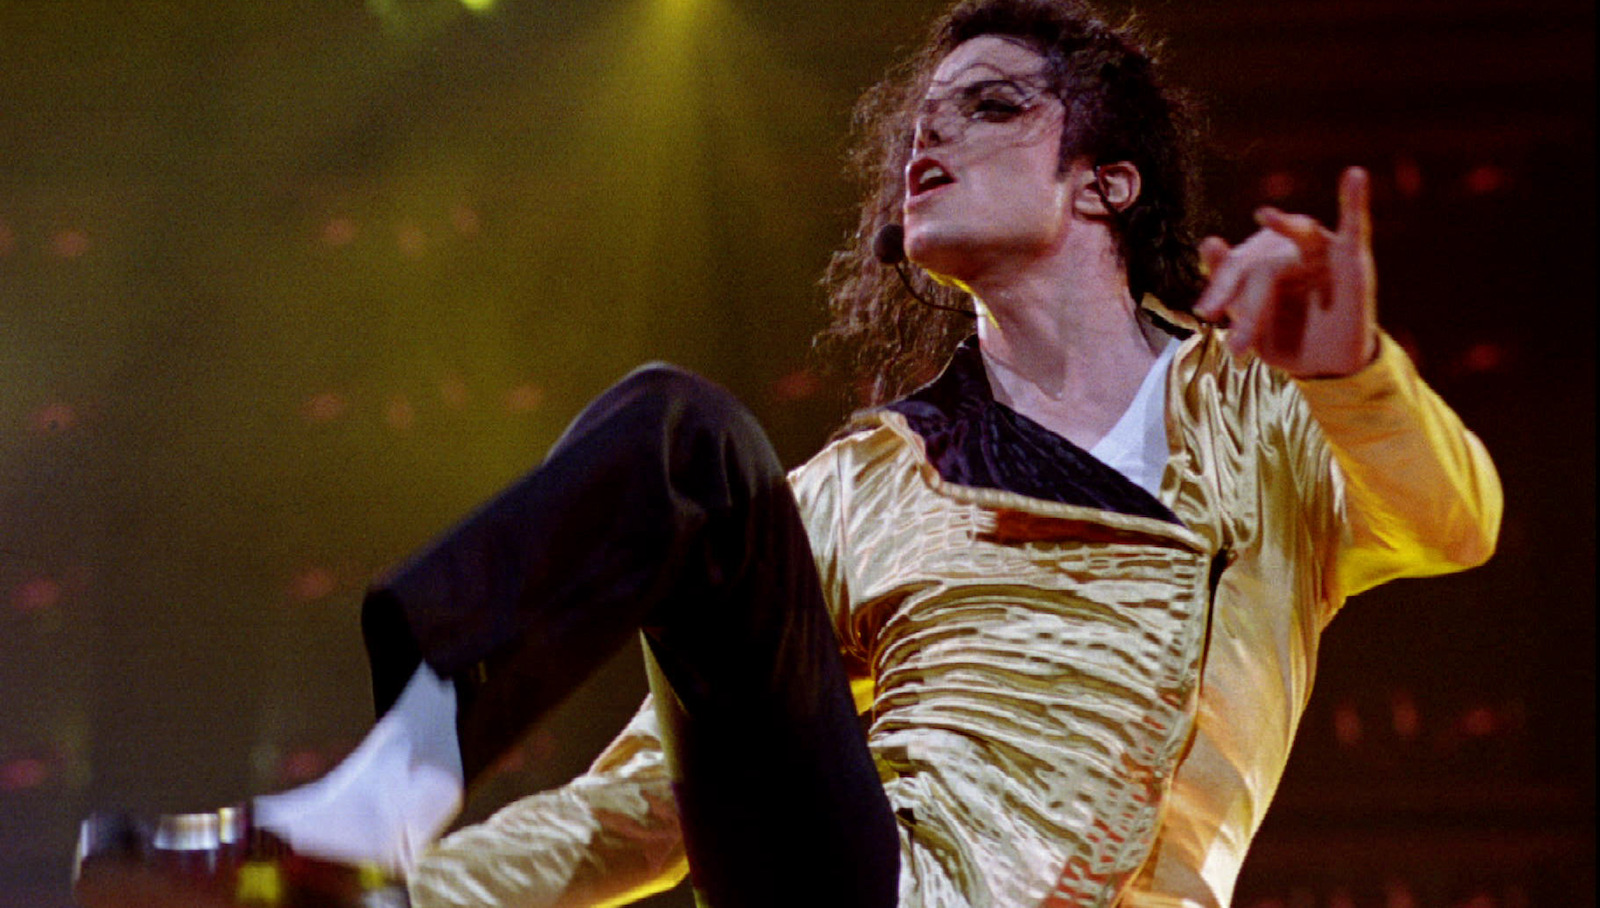 Pop superstar Michael Jackson during his second concert in Israel September 21 - RTXEZ72